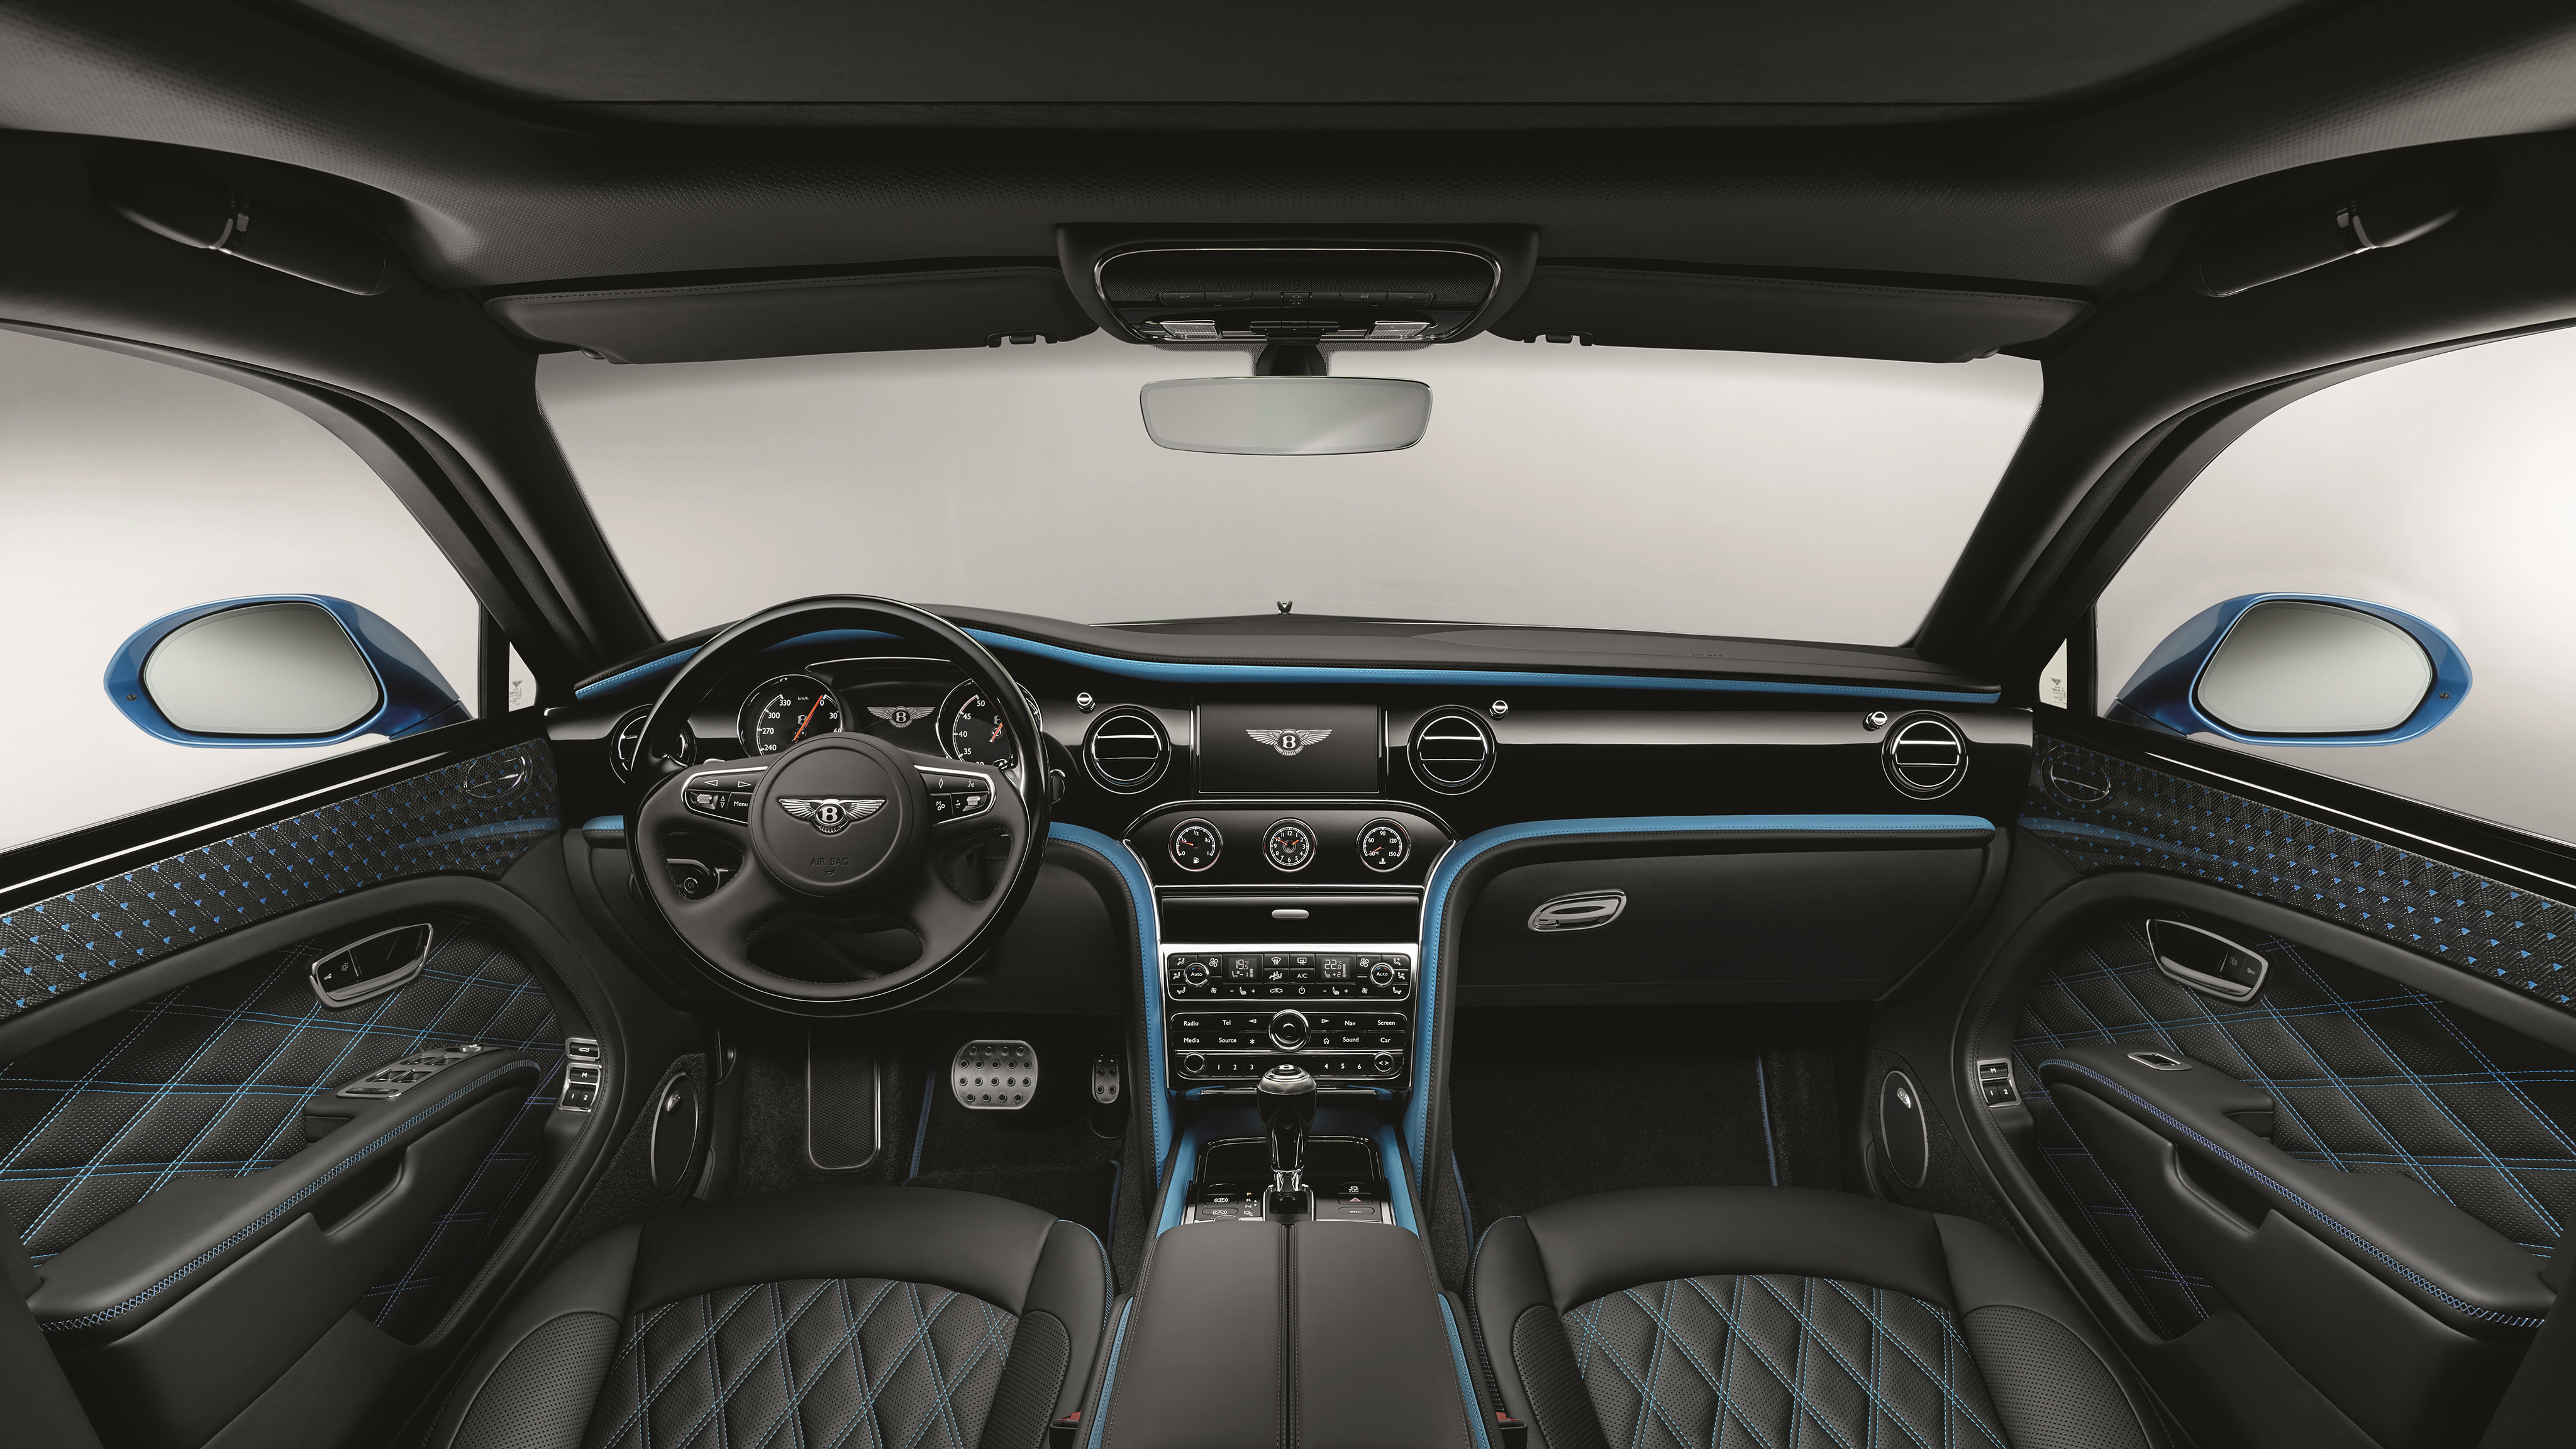 2018 bentley mulsanne speed design series interior wallpaper hd car wallpapers id 8472. Black Bedroom Furniture Sets. Home Design Ideas